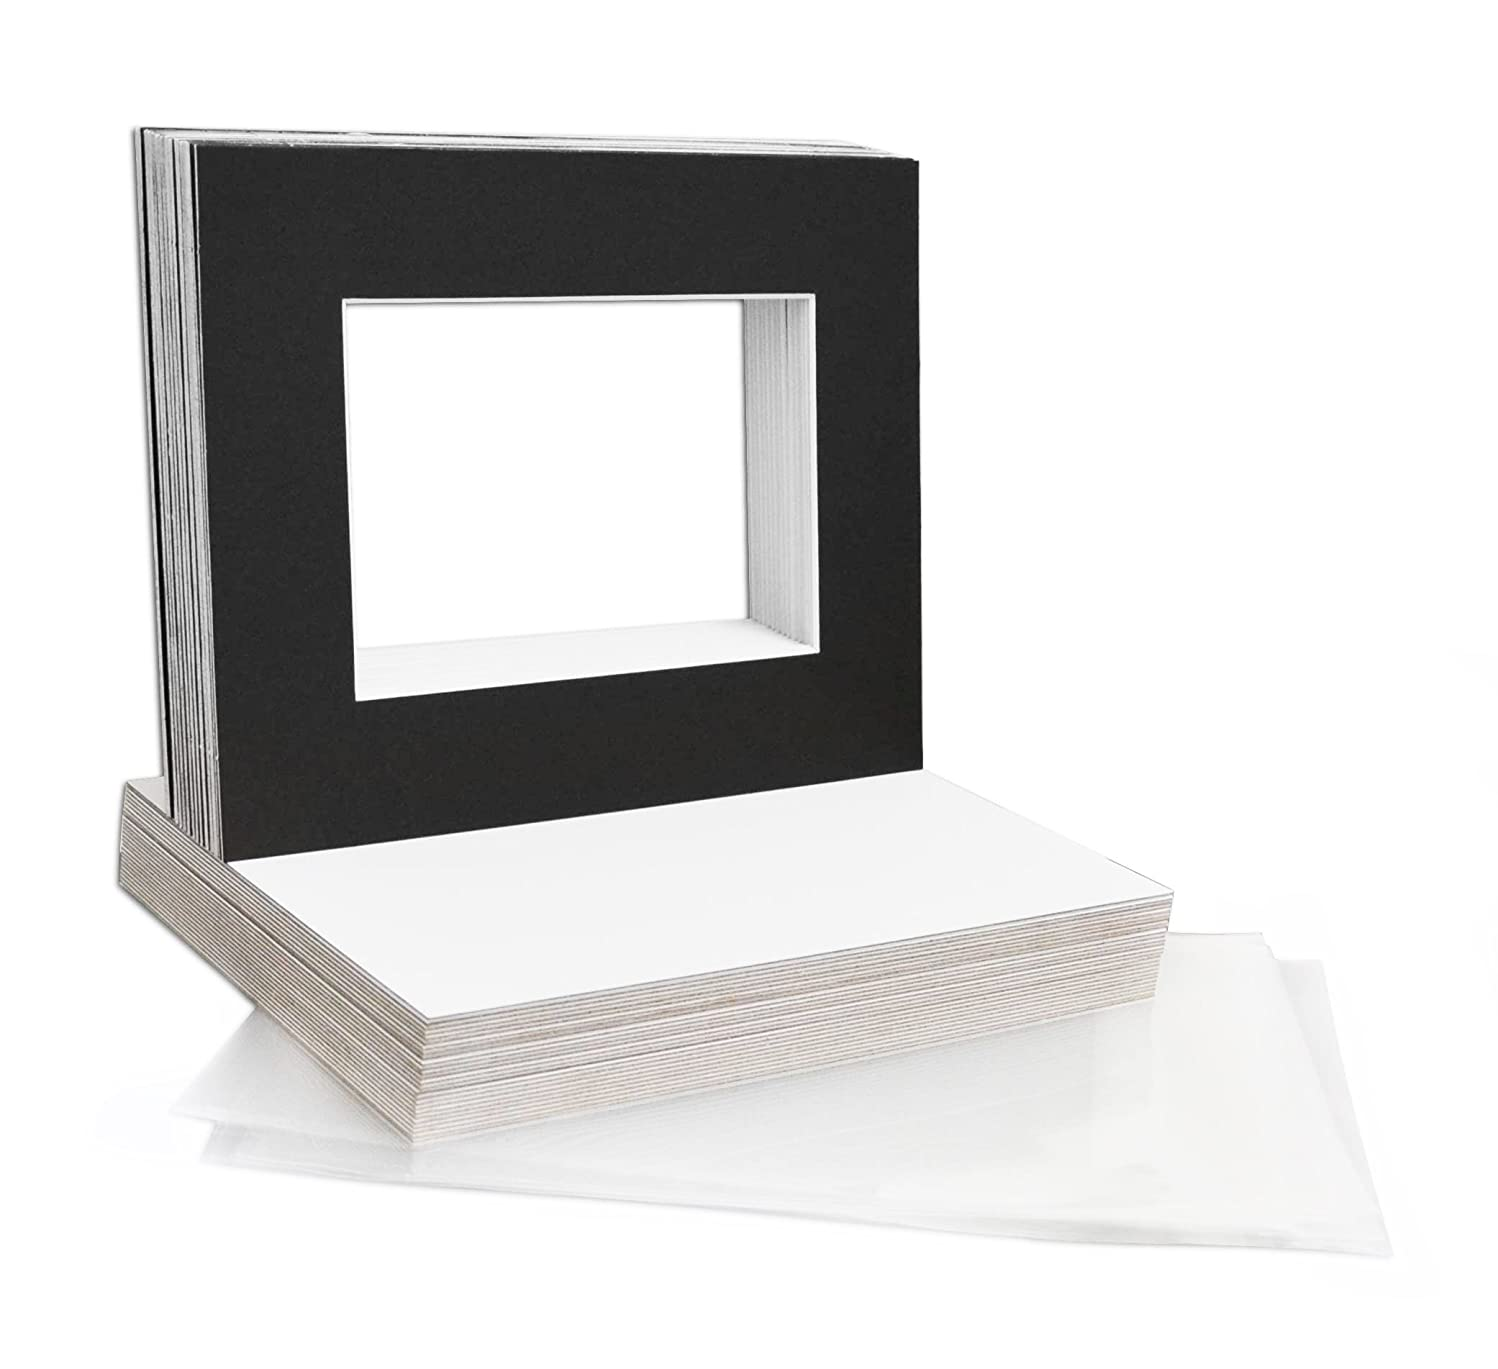 Mat Board Center, 8x10 Picture Mat Sets for 5x7 Photo. Includes a Pack of 50 White Core Bevel Pre-Cut White Core Matte & 50 Backing Board & 50 Clear Bags (Black)